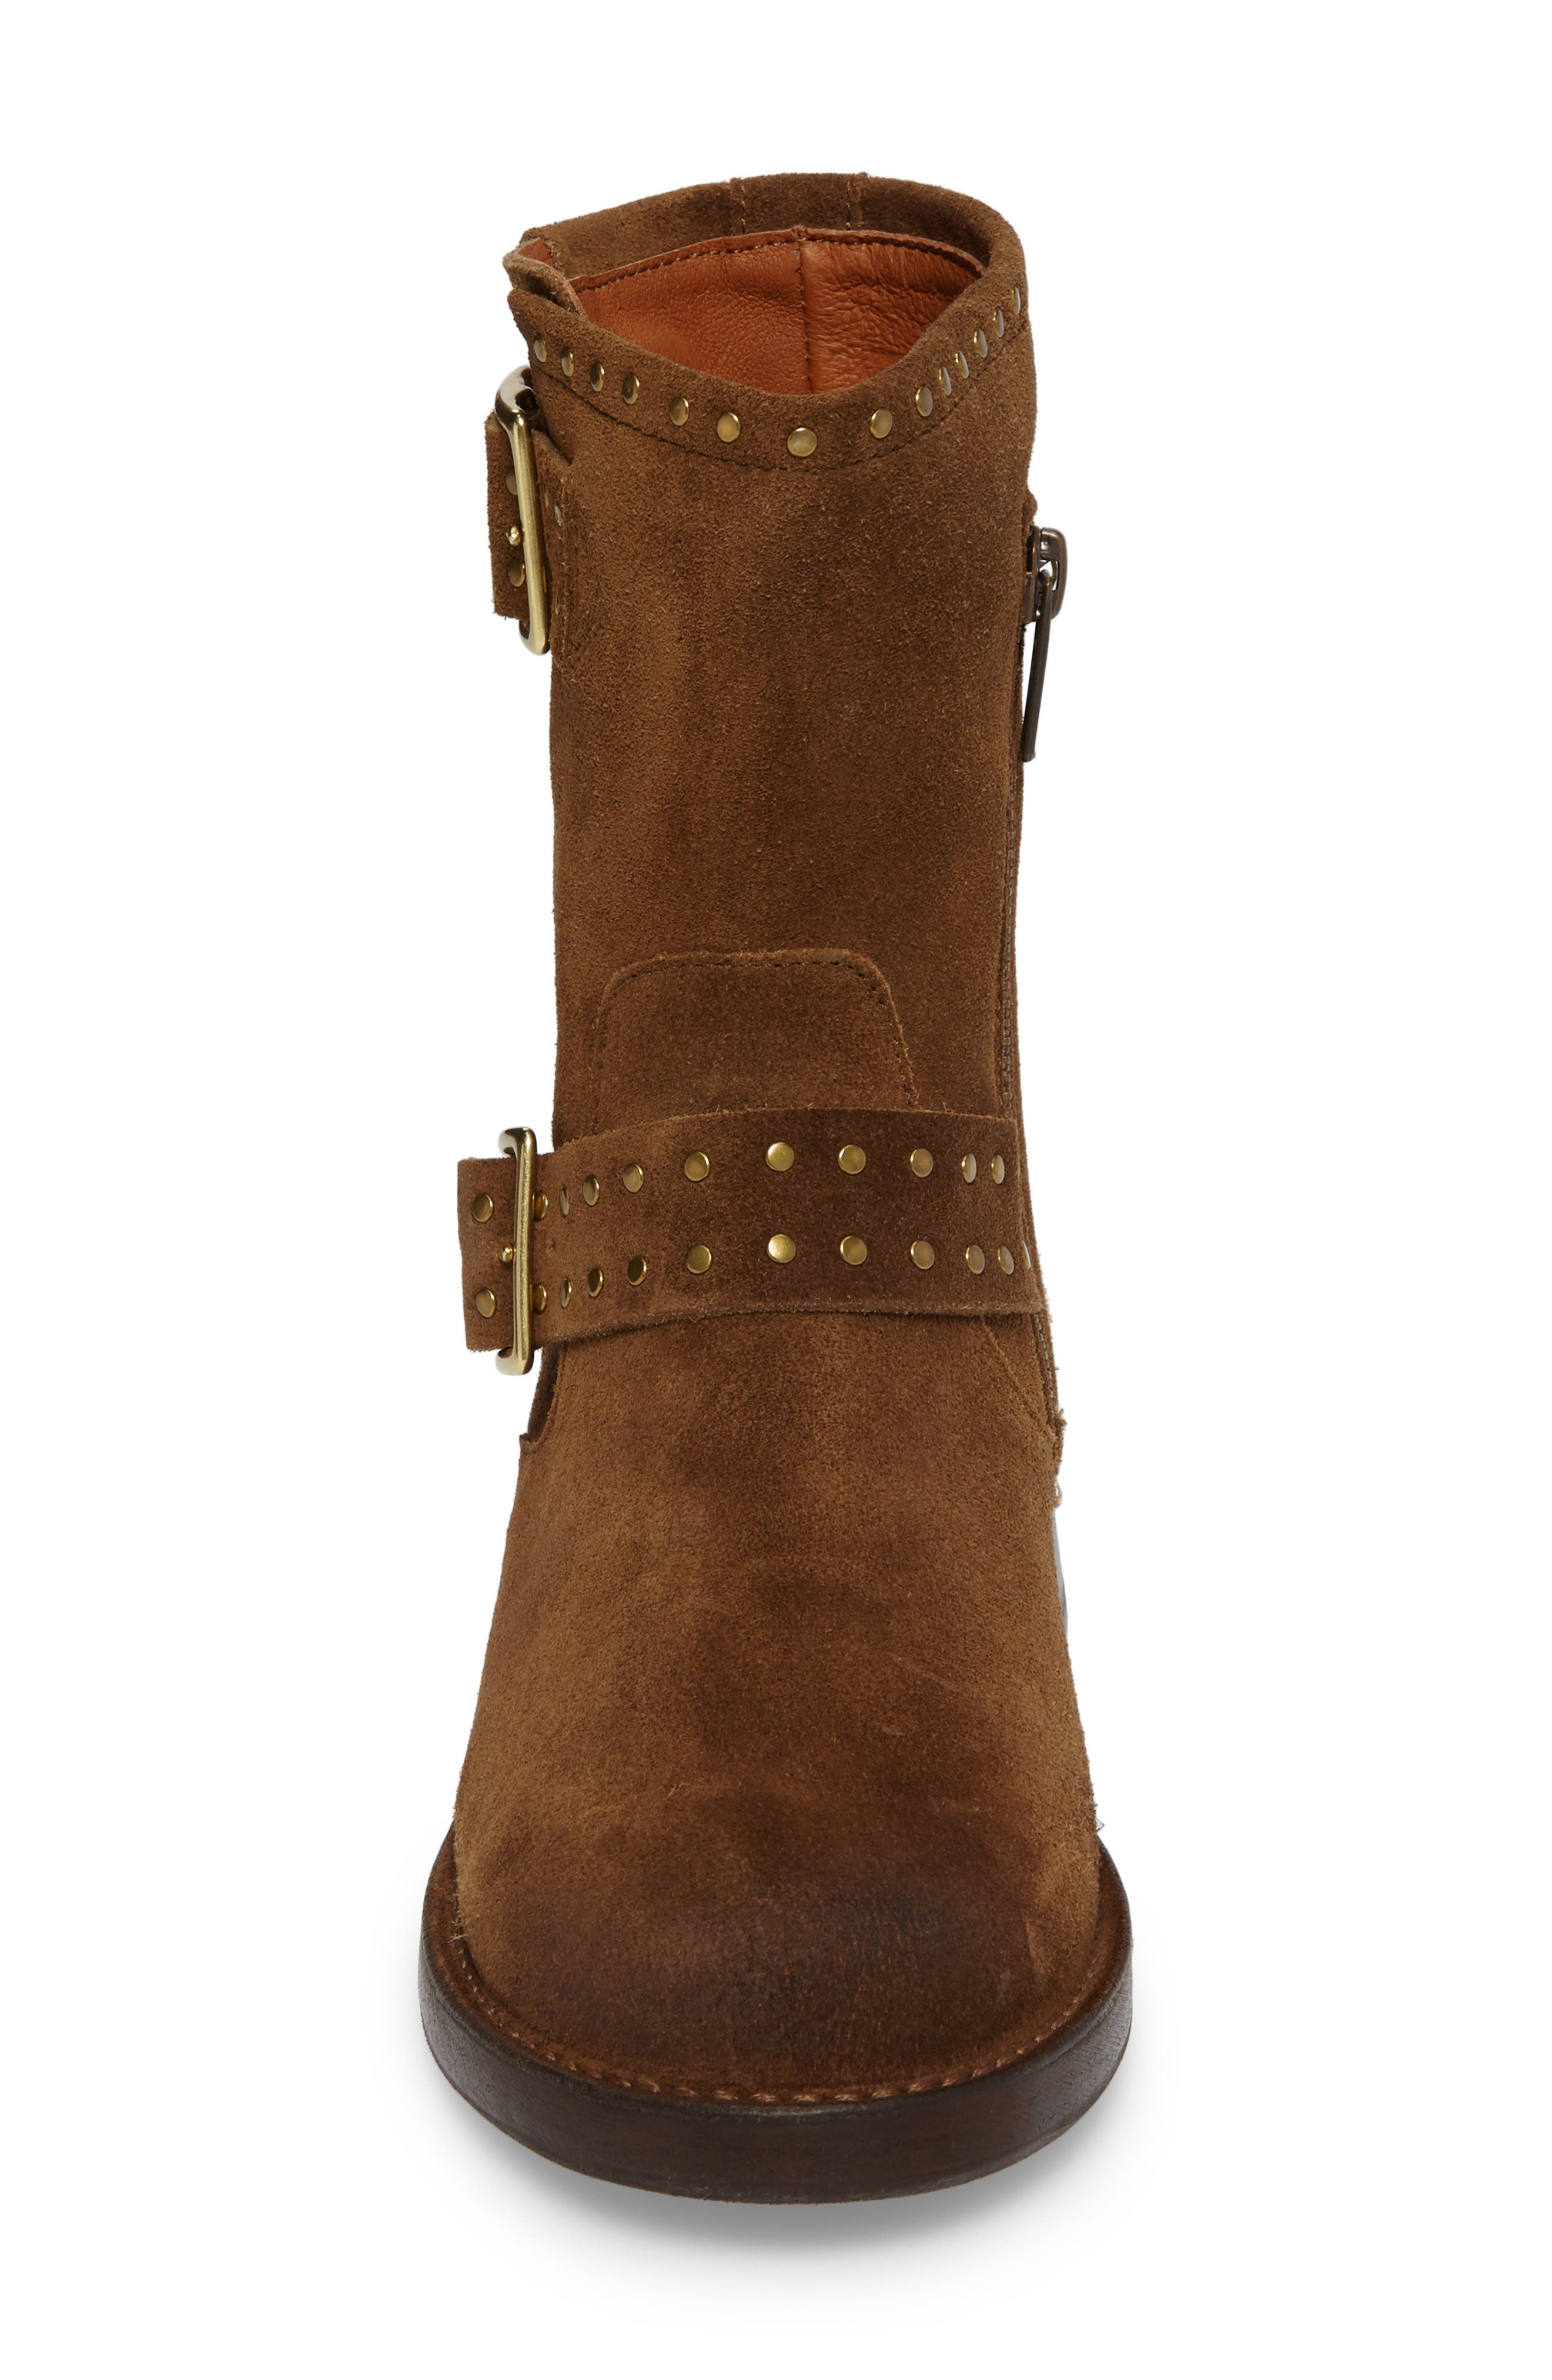 Vicky Stud Engineer Boot,                             Alternate thumbnail 4, color,                             Chestnut Suede